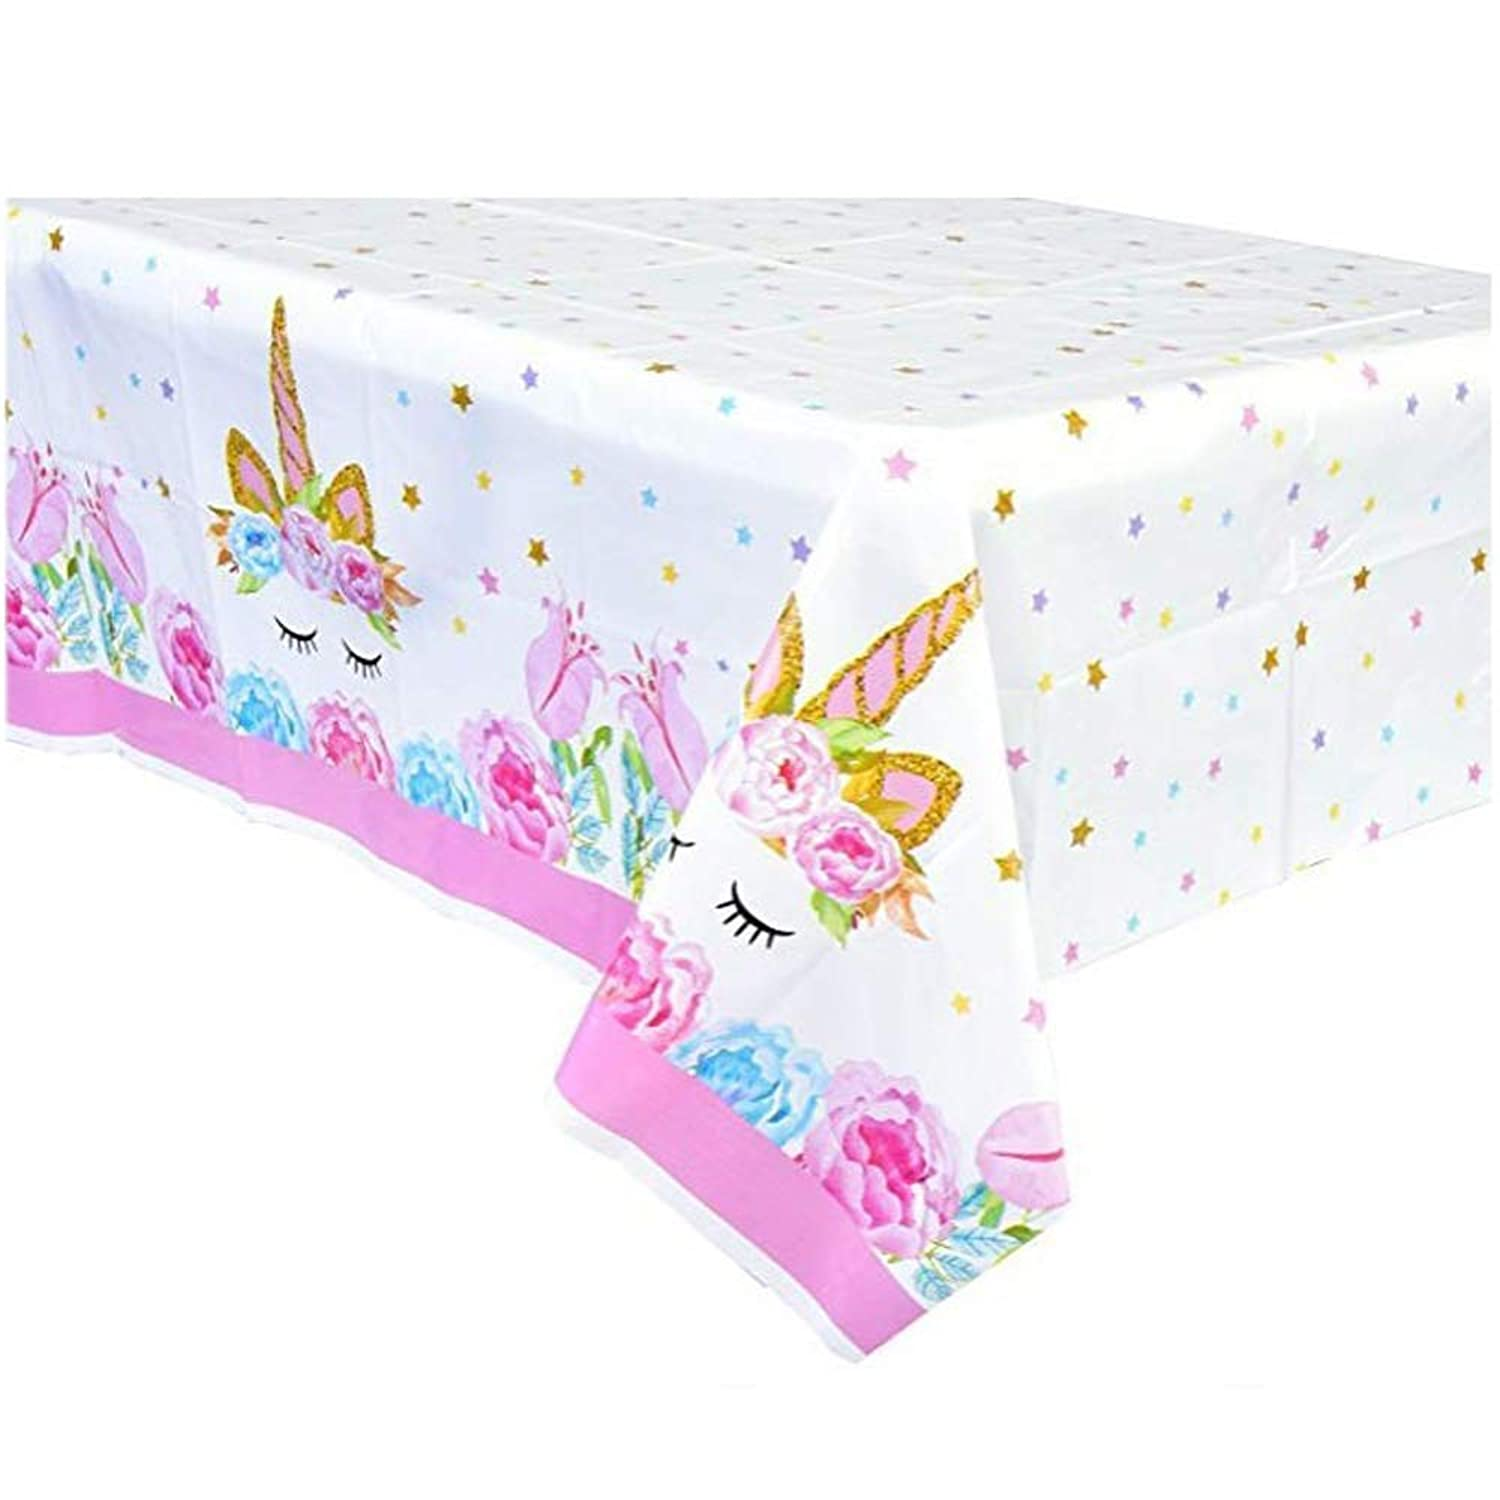 Unicorn Plastic Tablecloth, Disposable Table Cover for Unicorn Party Supplies,Featival Birthday Gift for Girls Kids Decoration and Baby Shower(43 x 71 in, 1 pcs)